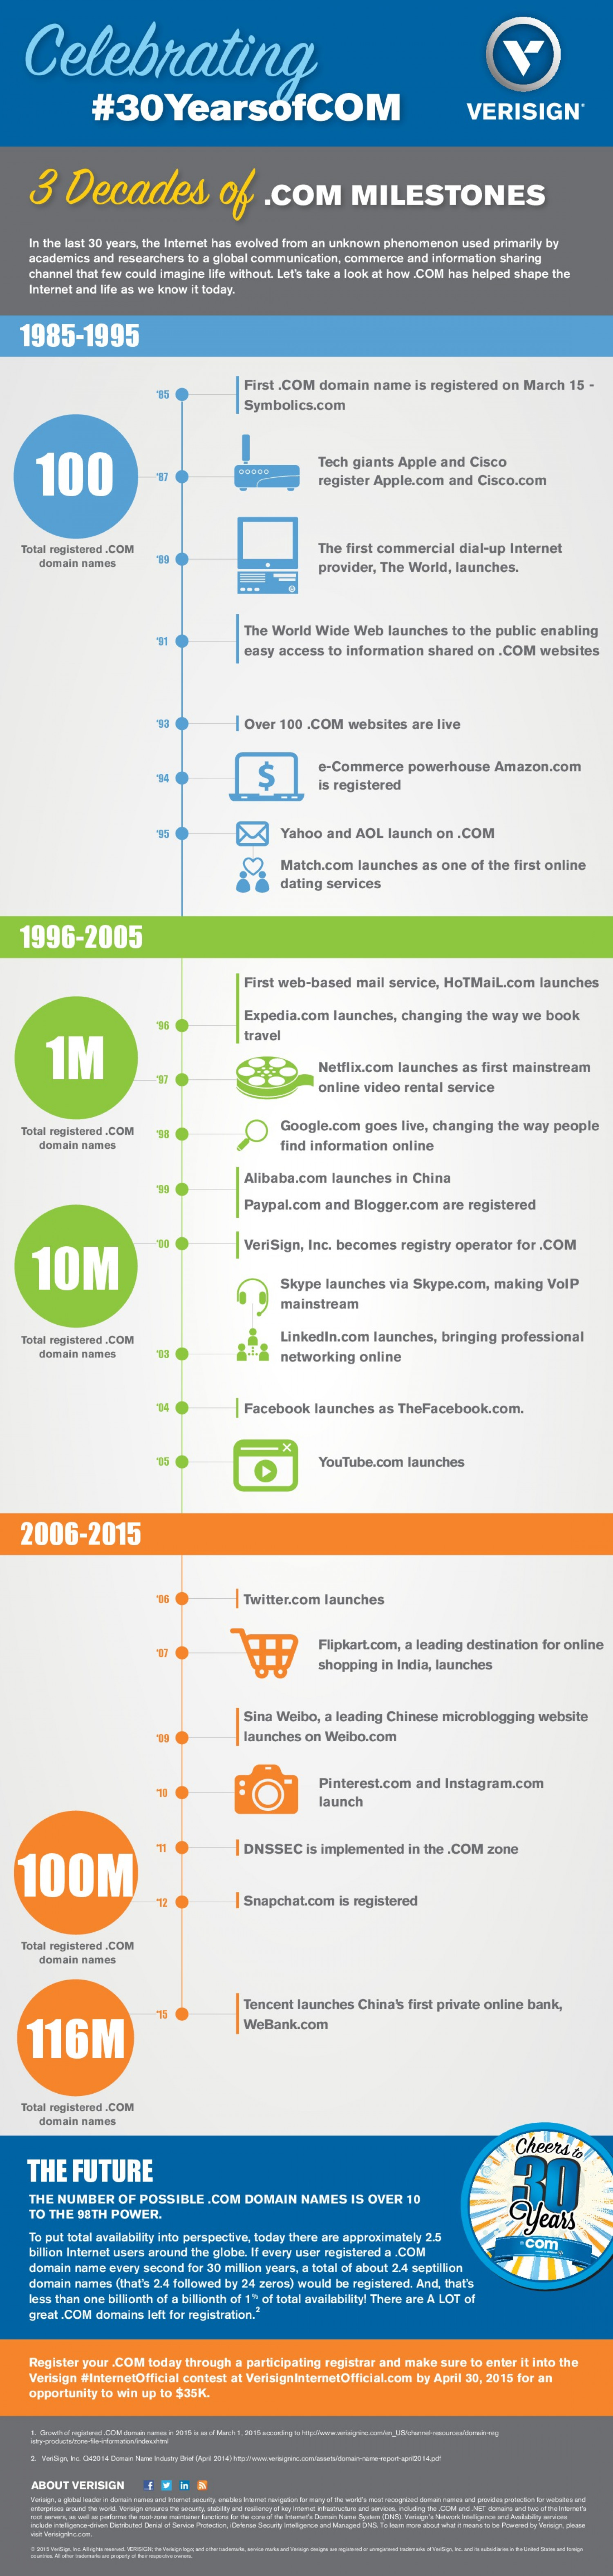 Celebrating #30YearsofCOM Infographic